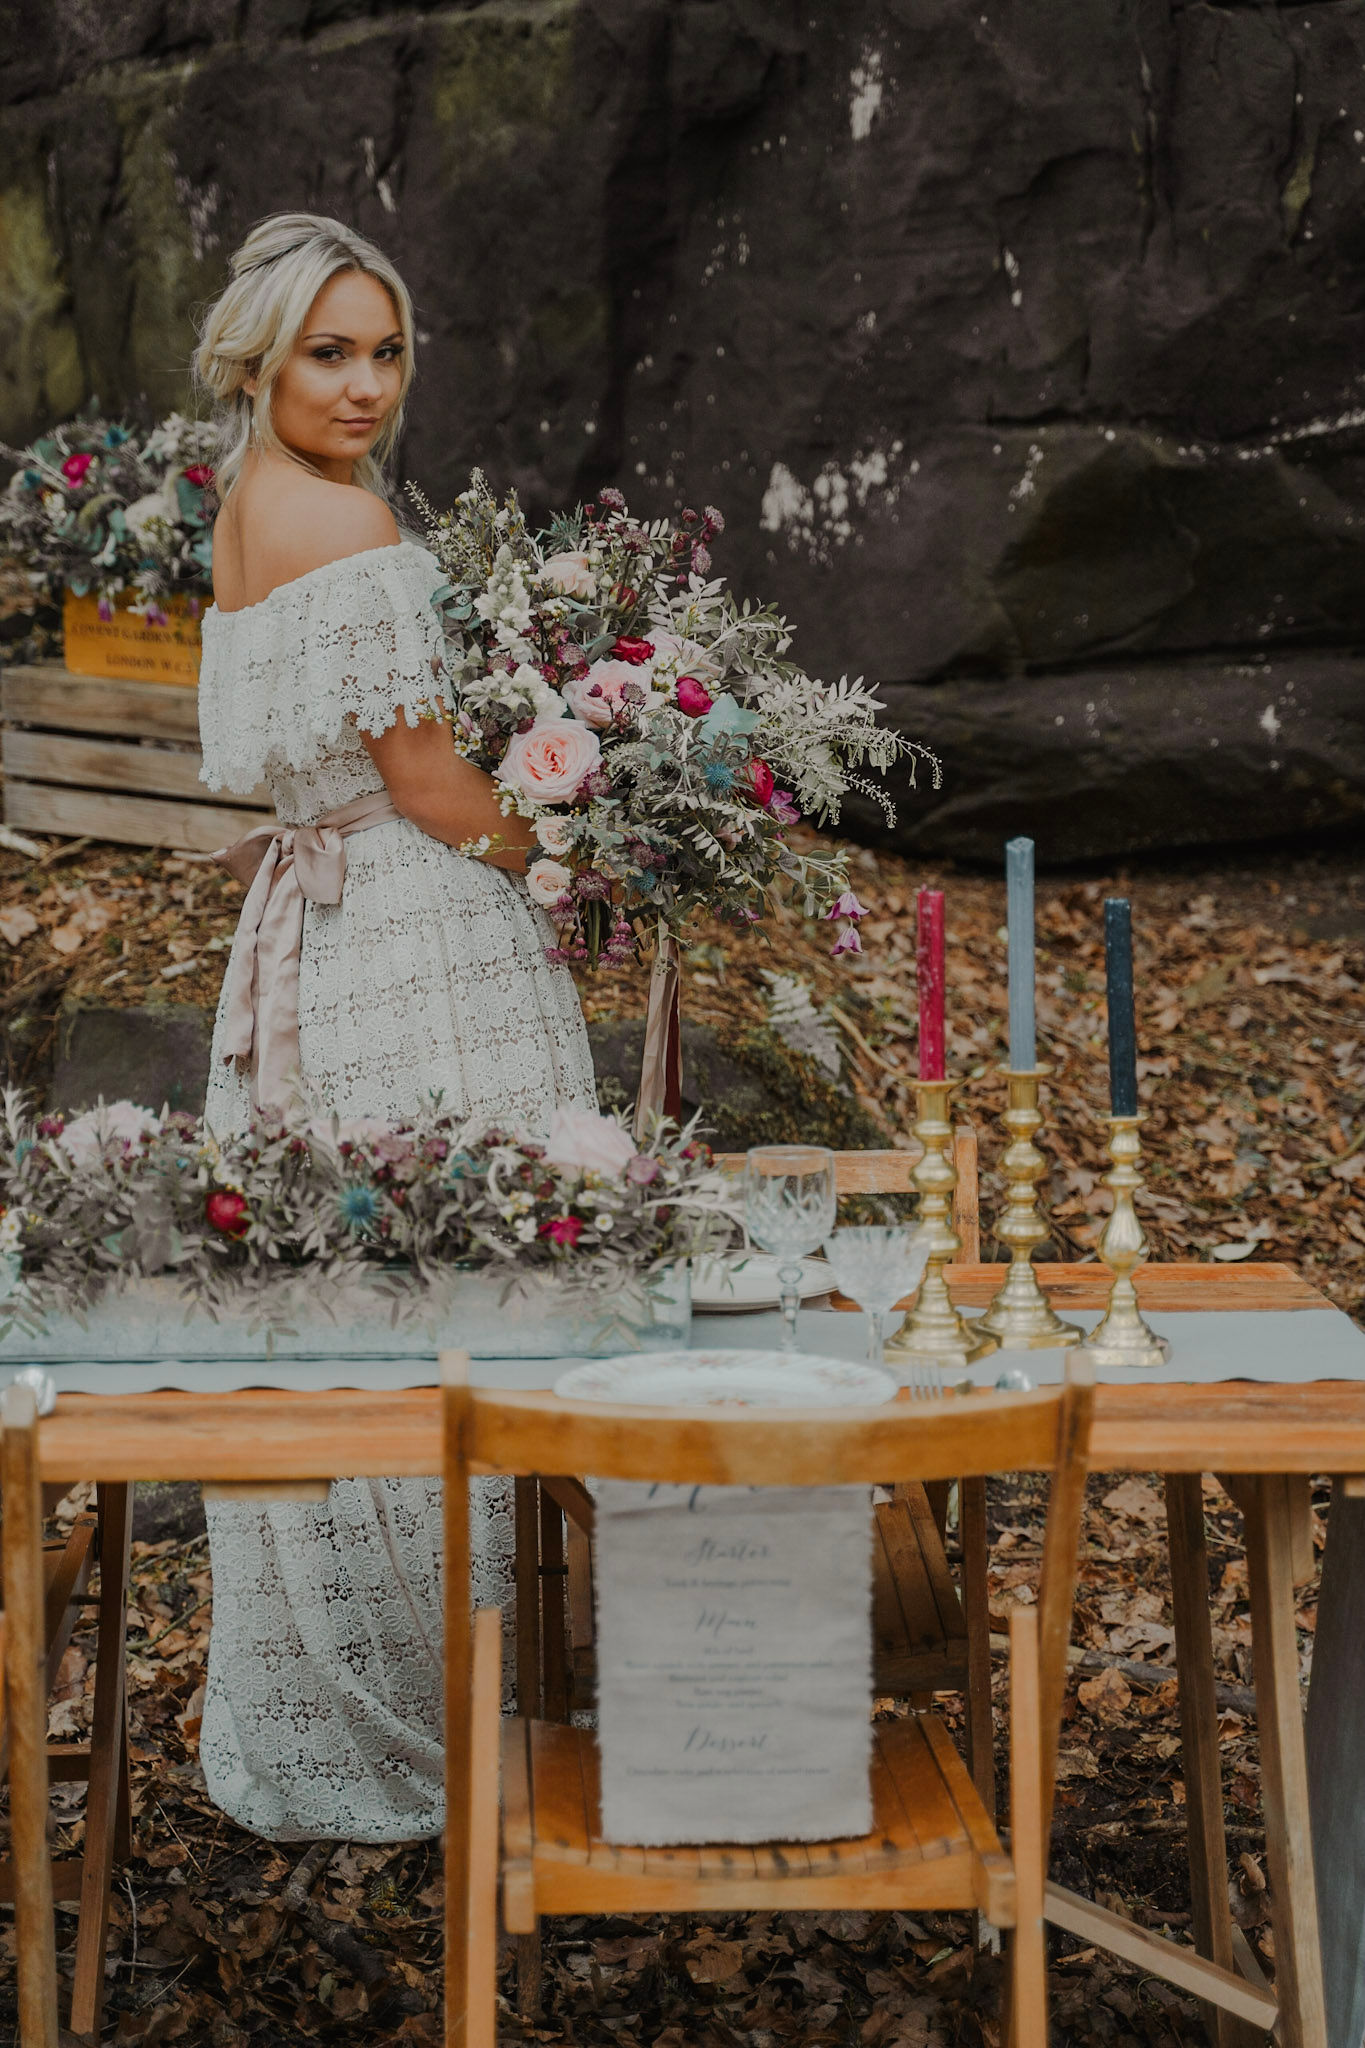 Patrick's Barn bridal styled shoot